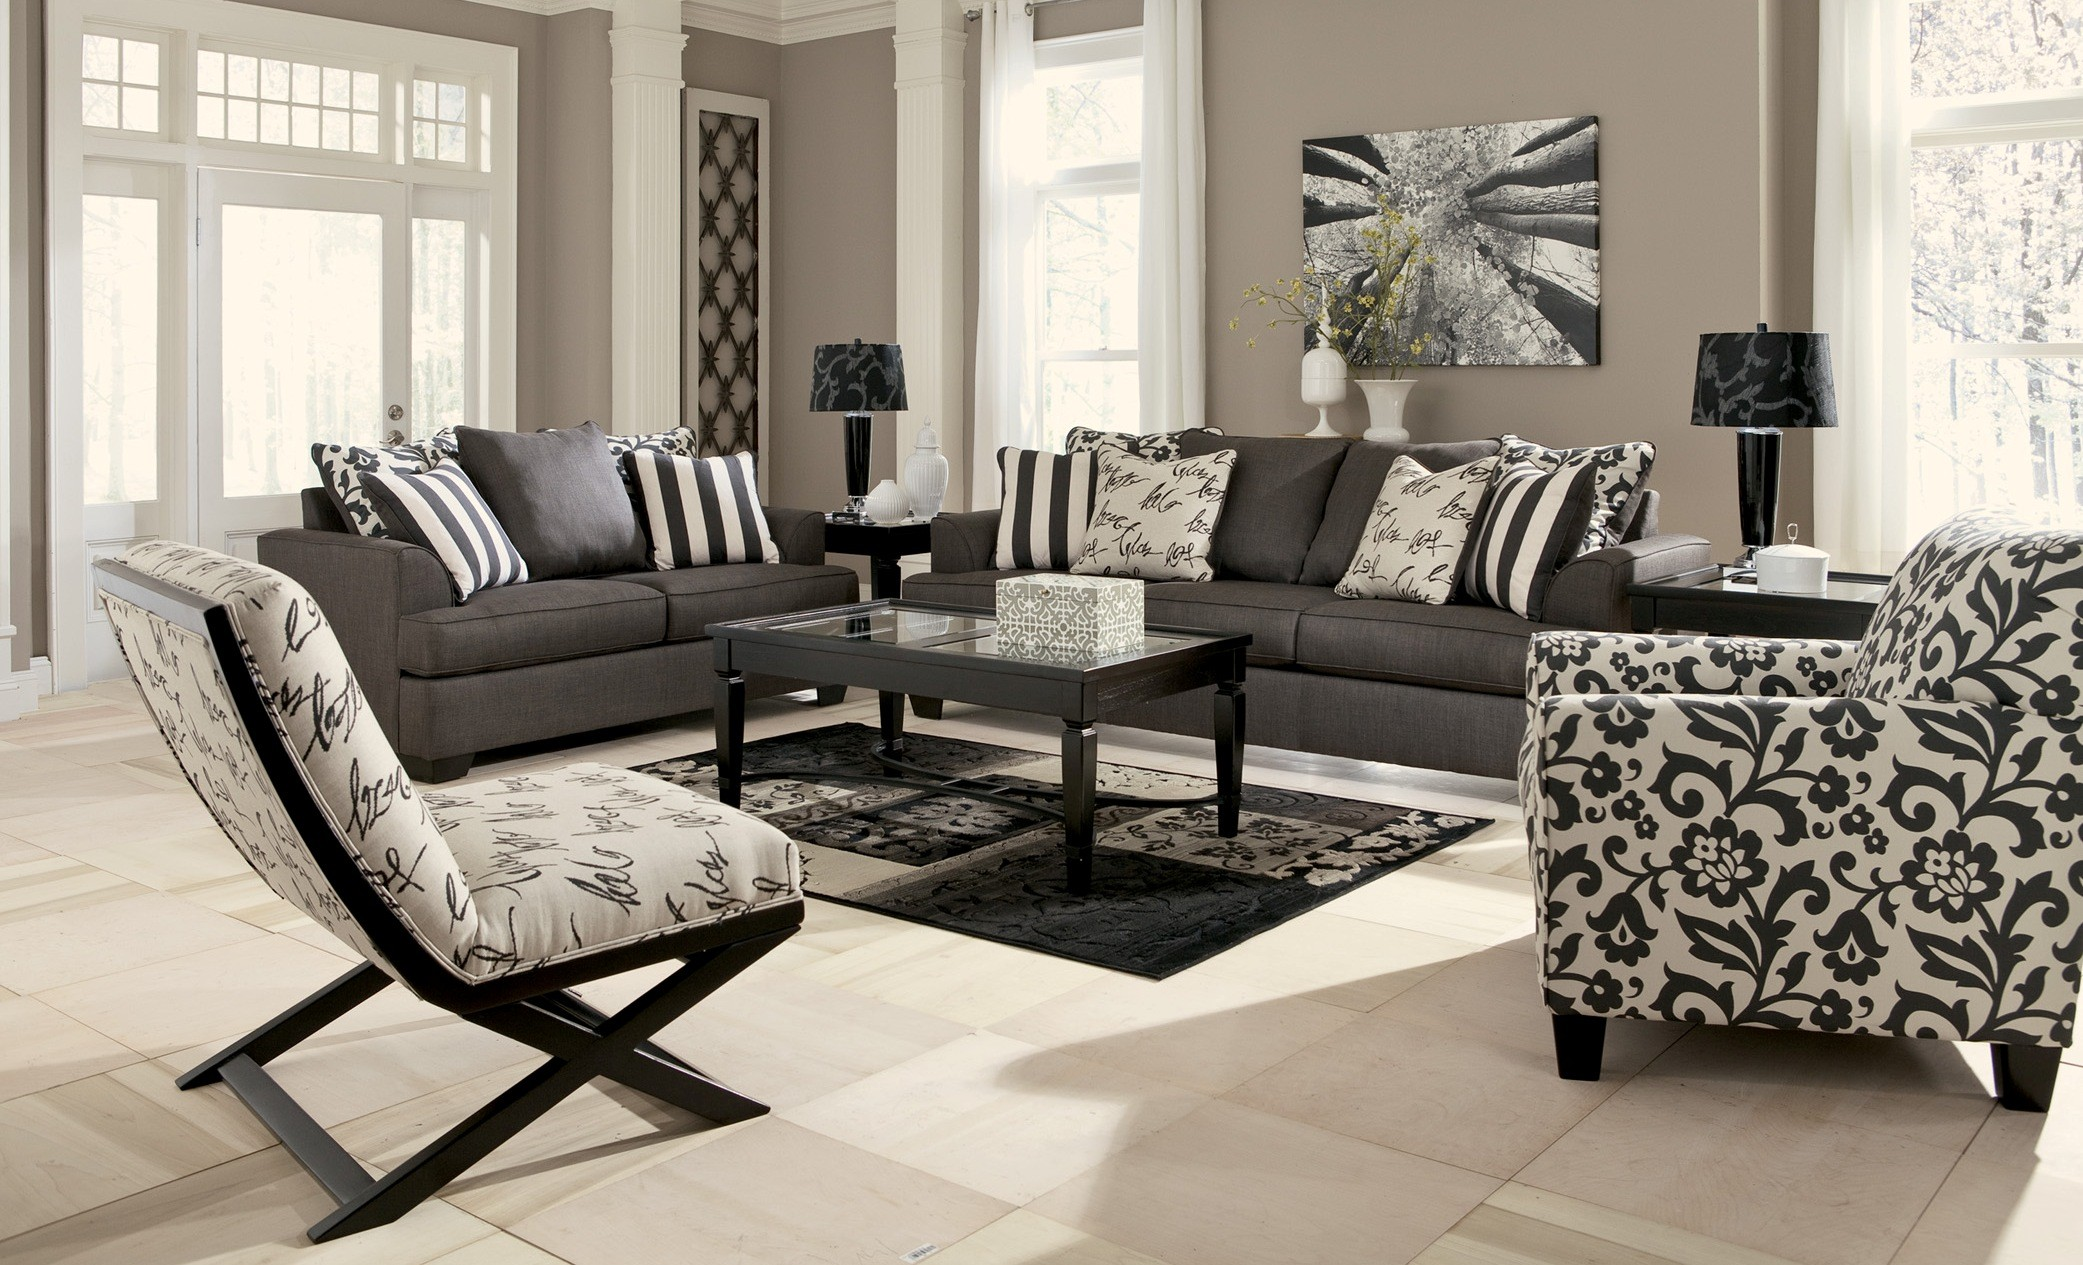 Levon charcoal living room set from ashley 73403 for Black and white living room set